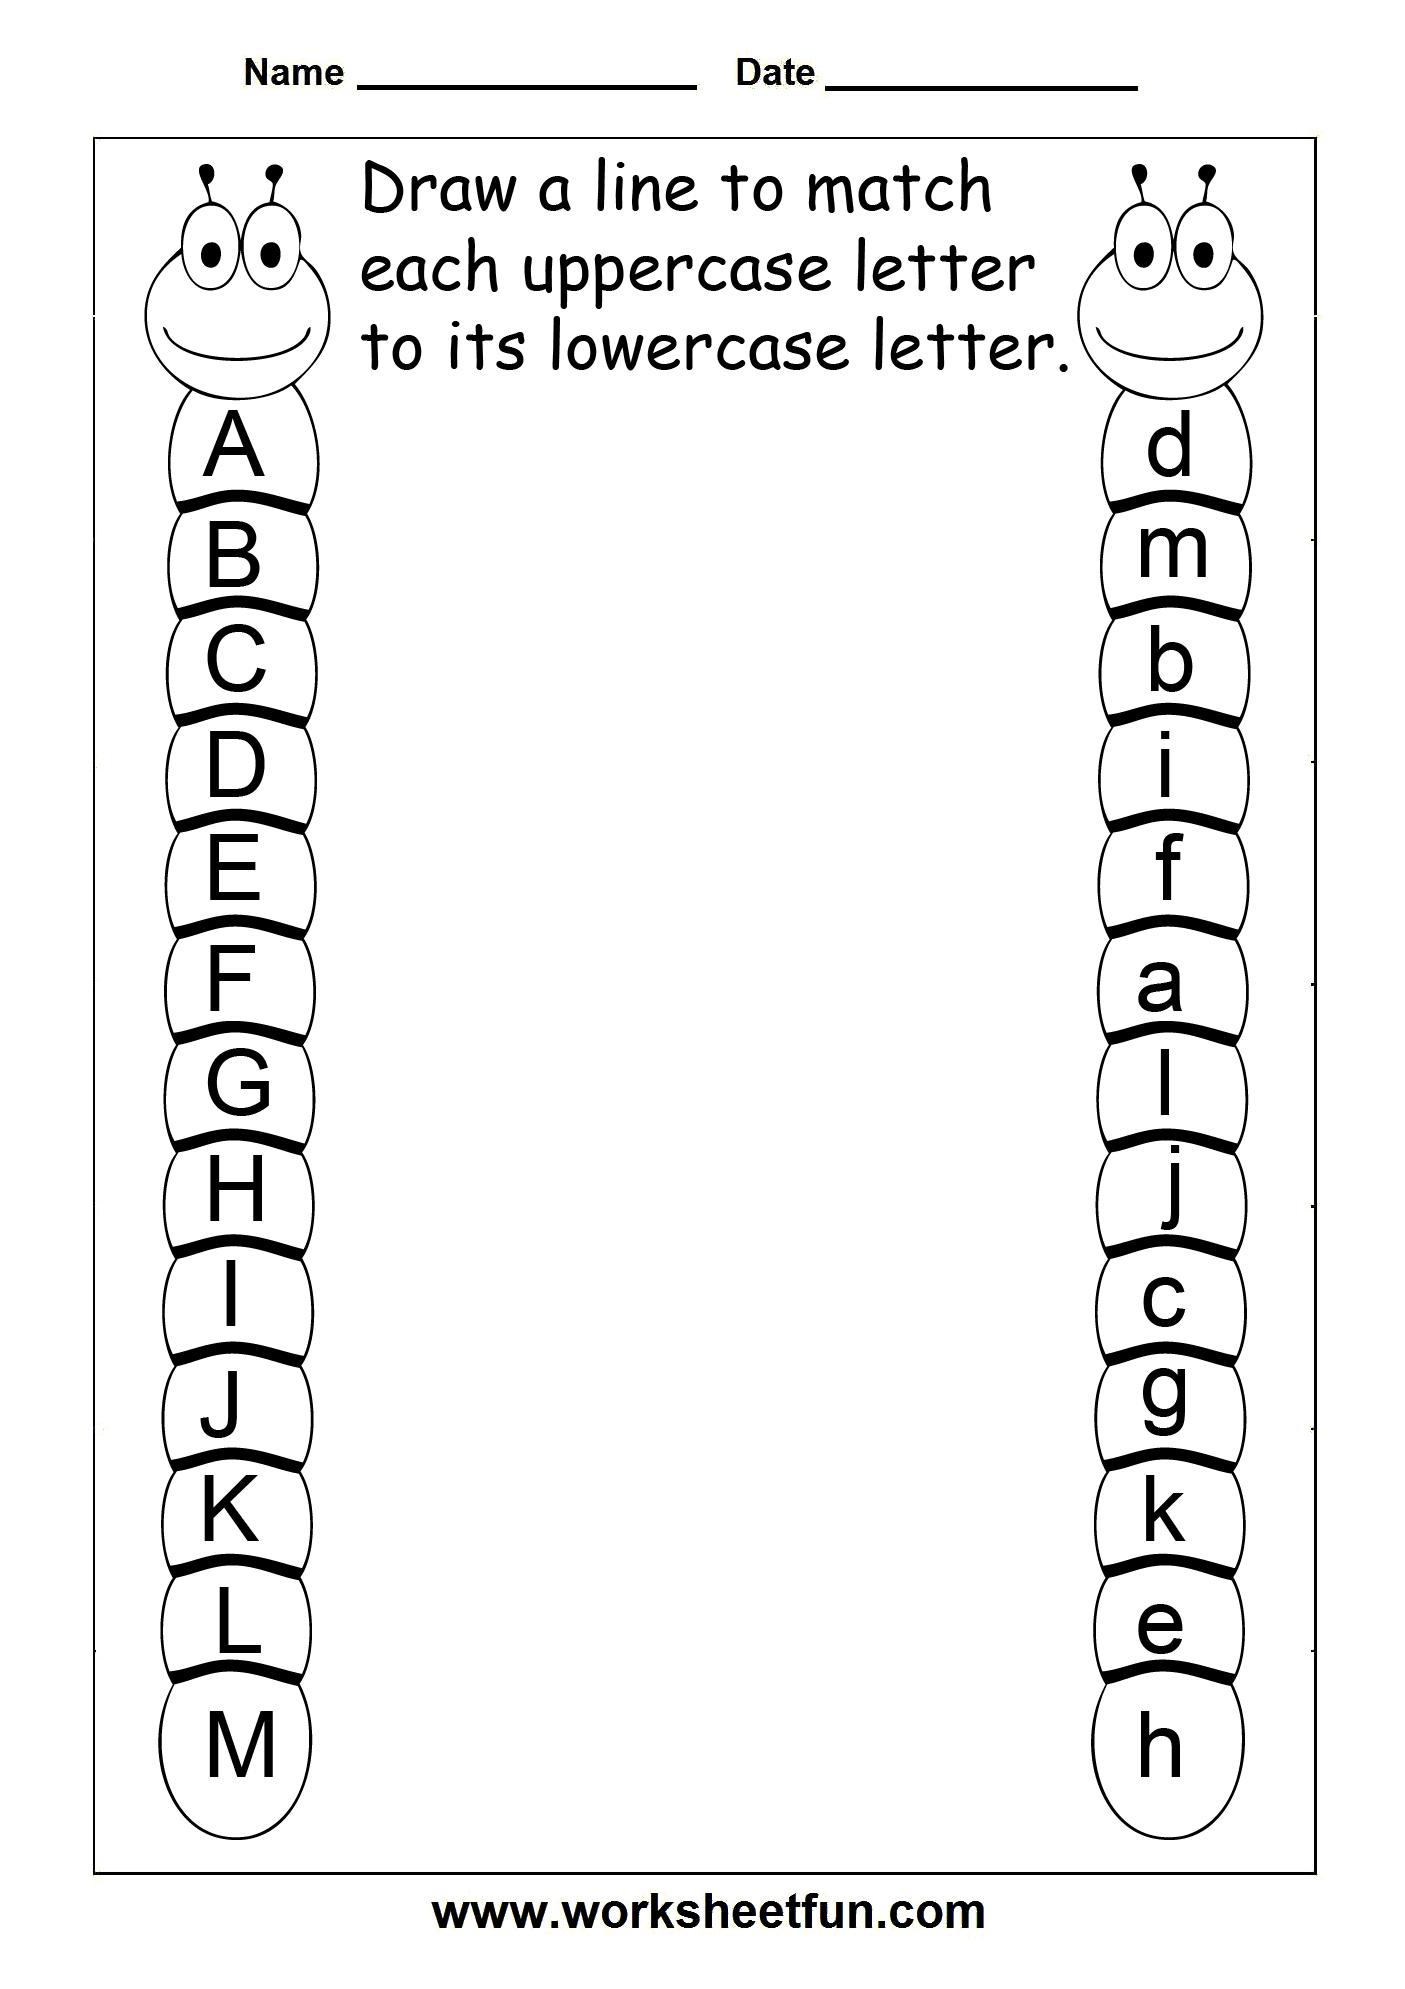 Weirdmailus  Pretty  Images About Work Worksheet On Pinterest  Hidden Pictures  With Fascinating  Images About Work Worksheet On Pinterest  Hidden Pictures Color By Numbers And Puzzles With Nice Linear Systems Worksheet Also D And D Shapes Worksheets In Addition Basic Chemistry Worksheet And How To Write A Limerick Worksheet As Well As Qu Worksheets Additionally Winter Worksheets For First Grade From Pinterestcom With Weirdmailus  Fascinating  Images About Work Worksheet On Pinterest  Hidden Pictures  With Nice  Images About Work Worksheet On Pinterest  Hidden Pictures Color By Numbers And Puzzles And Pretty Linear Systems Worksheet Also D And D Shapes Worksheets In Addition Basic Chemistry Worksheet From Pinterestcom